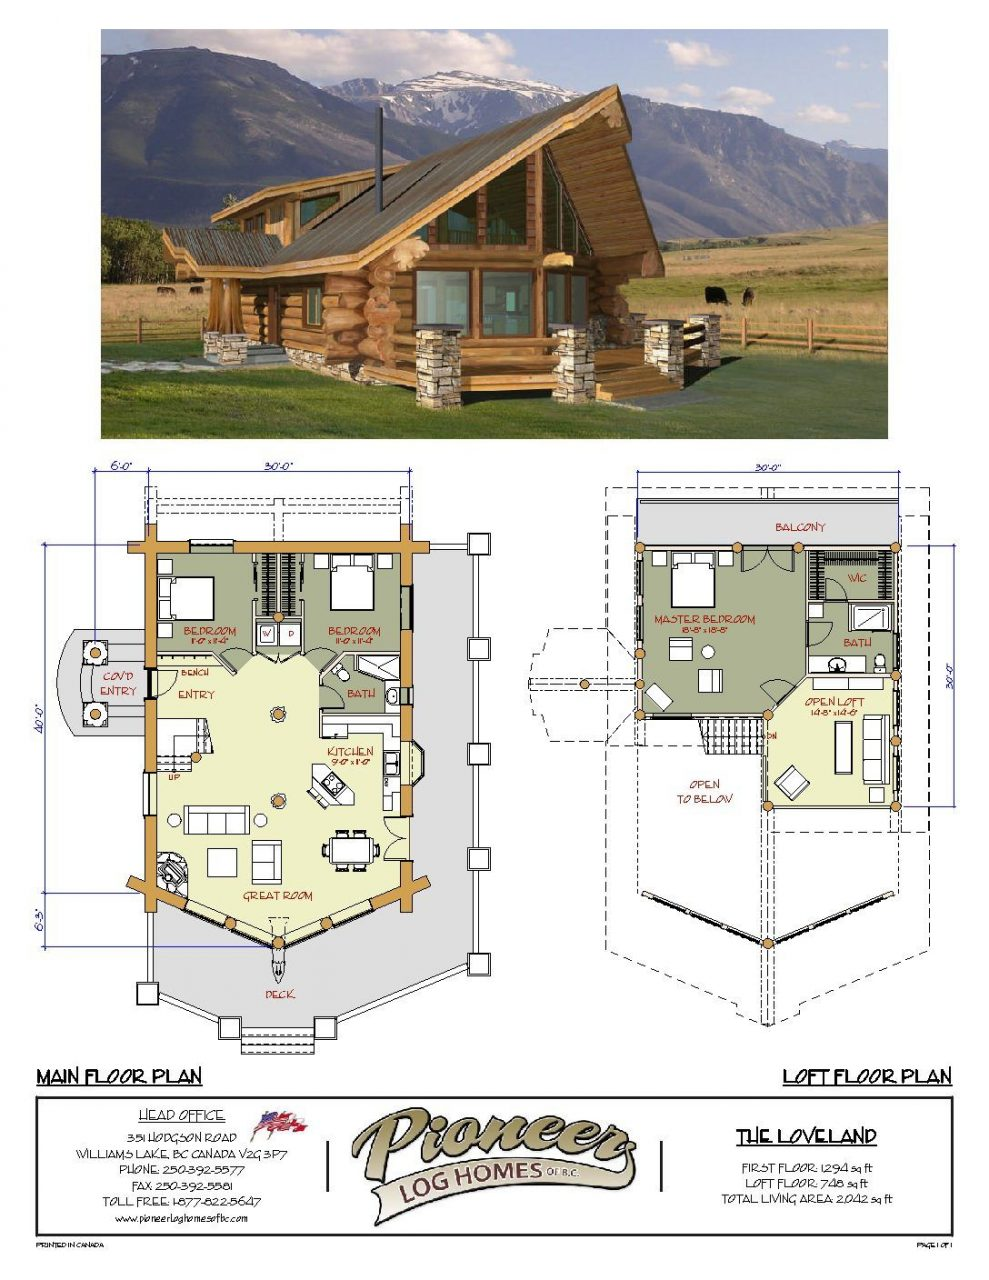 Loveland Pioneer Log Homes Midwest Barn House Barndominium